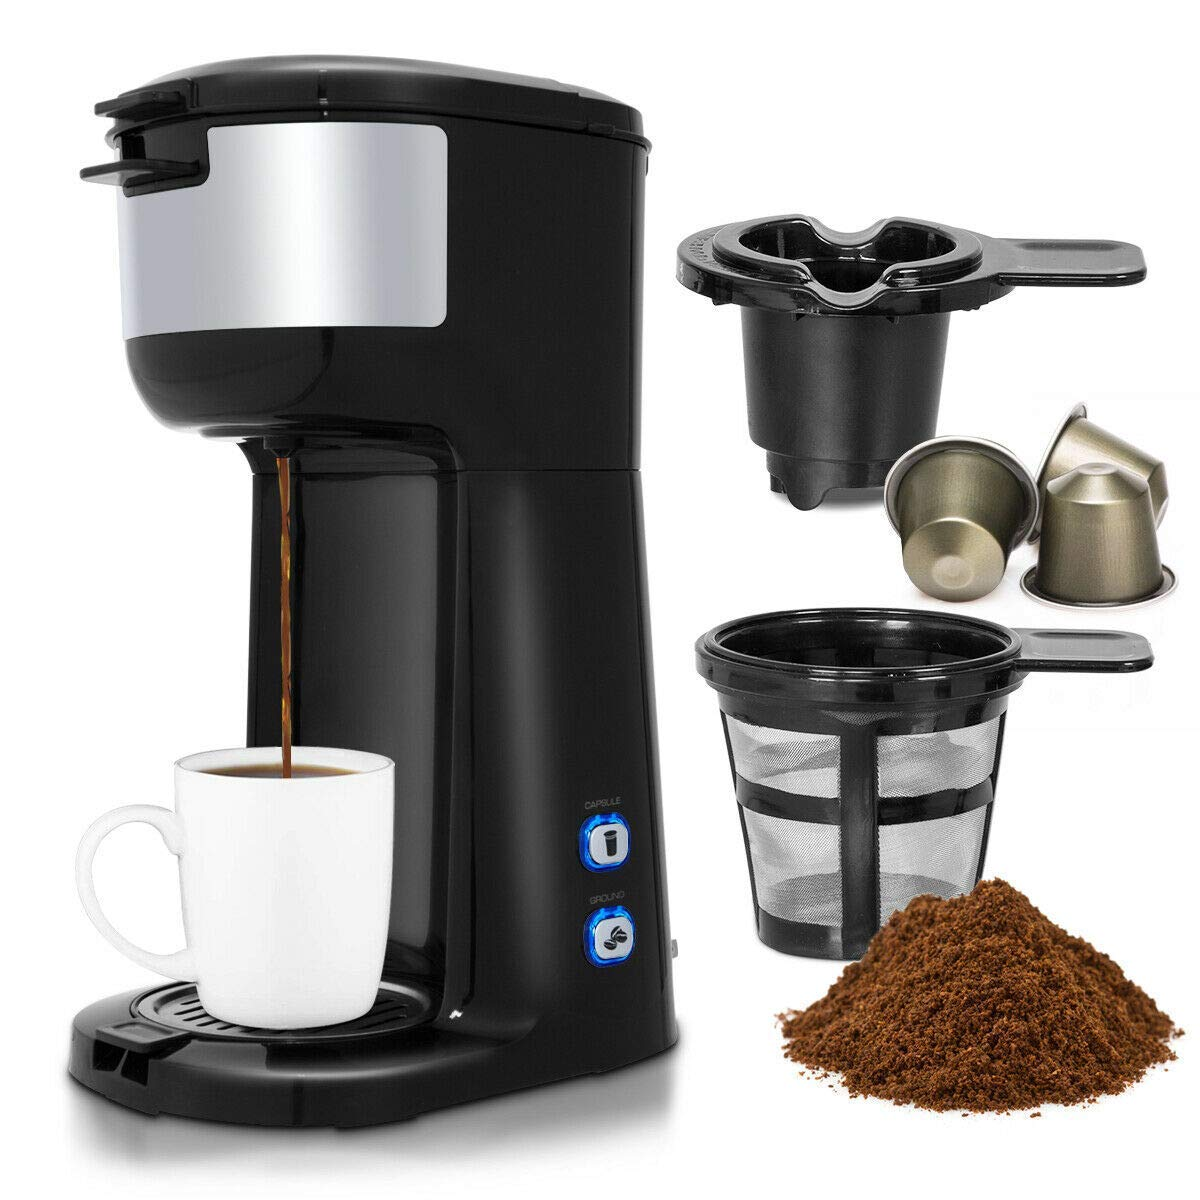 Costway Coffee Maker, Portable Auto Shut-off 2-in-1 Coffee Maker, Single Cup Coffee Brewer Built-in Filter, Thermal Drip Instant Coffee Machine, Ground Coffee and Coffee Capsules Coffee Machine 1000W(Black) by COSTWAY